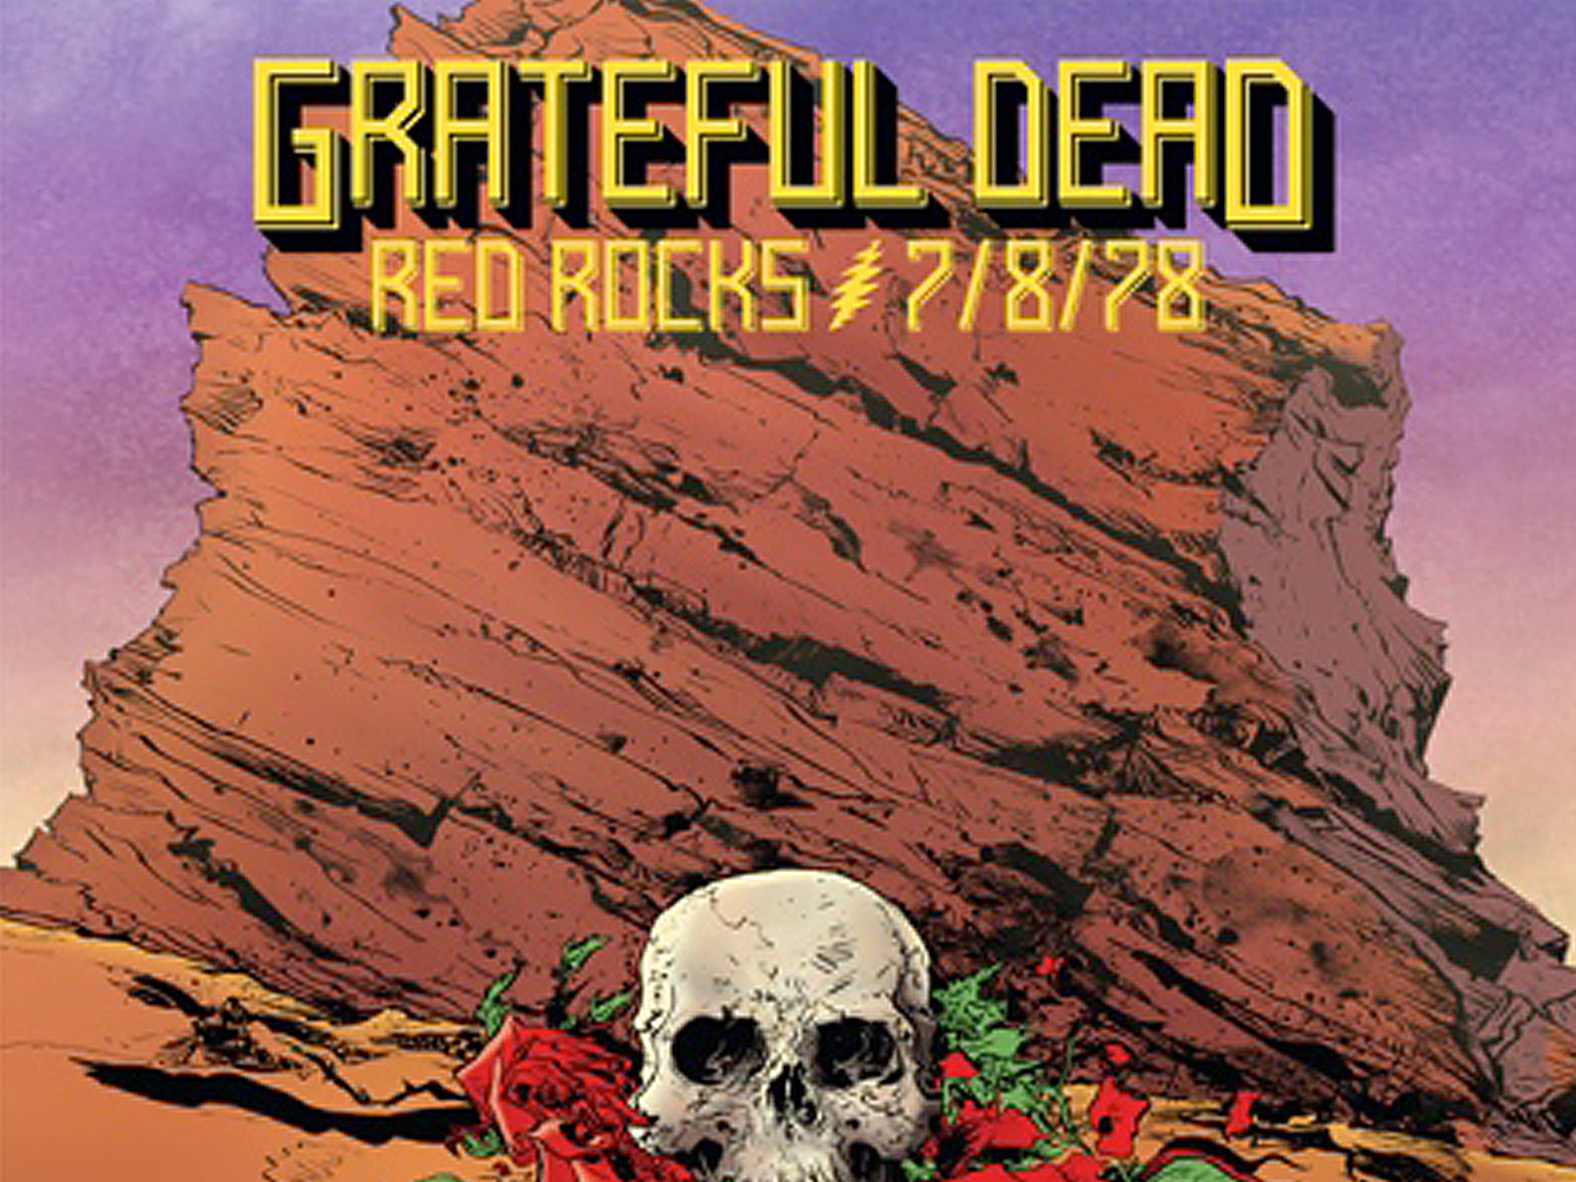 Grateful Dead Red Rocks 7/8/78